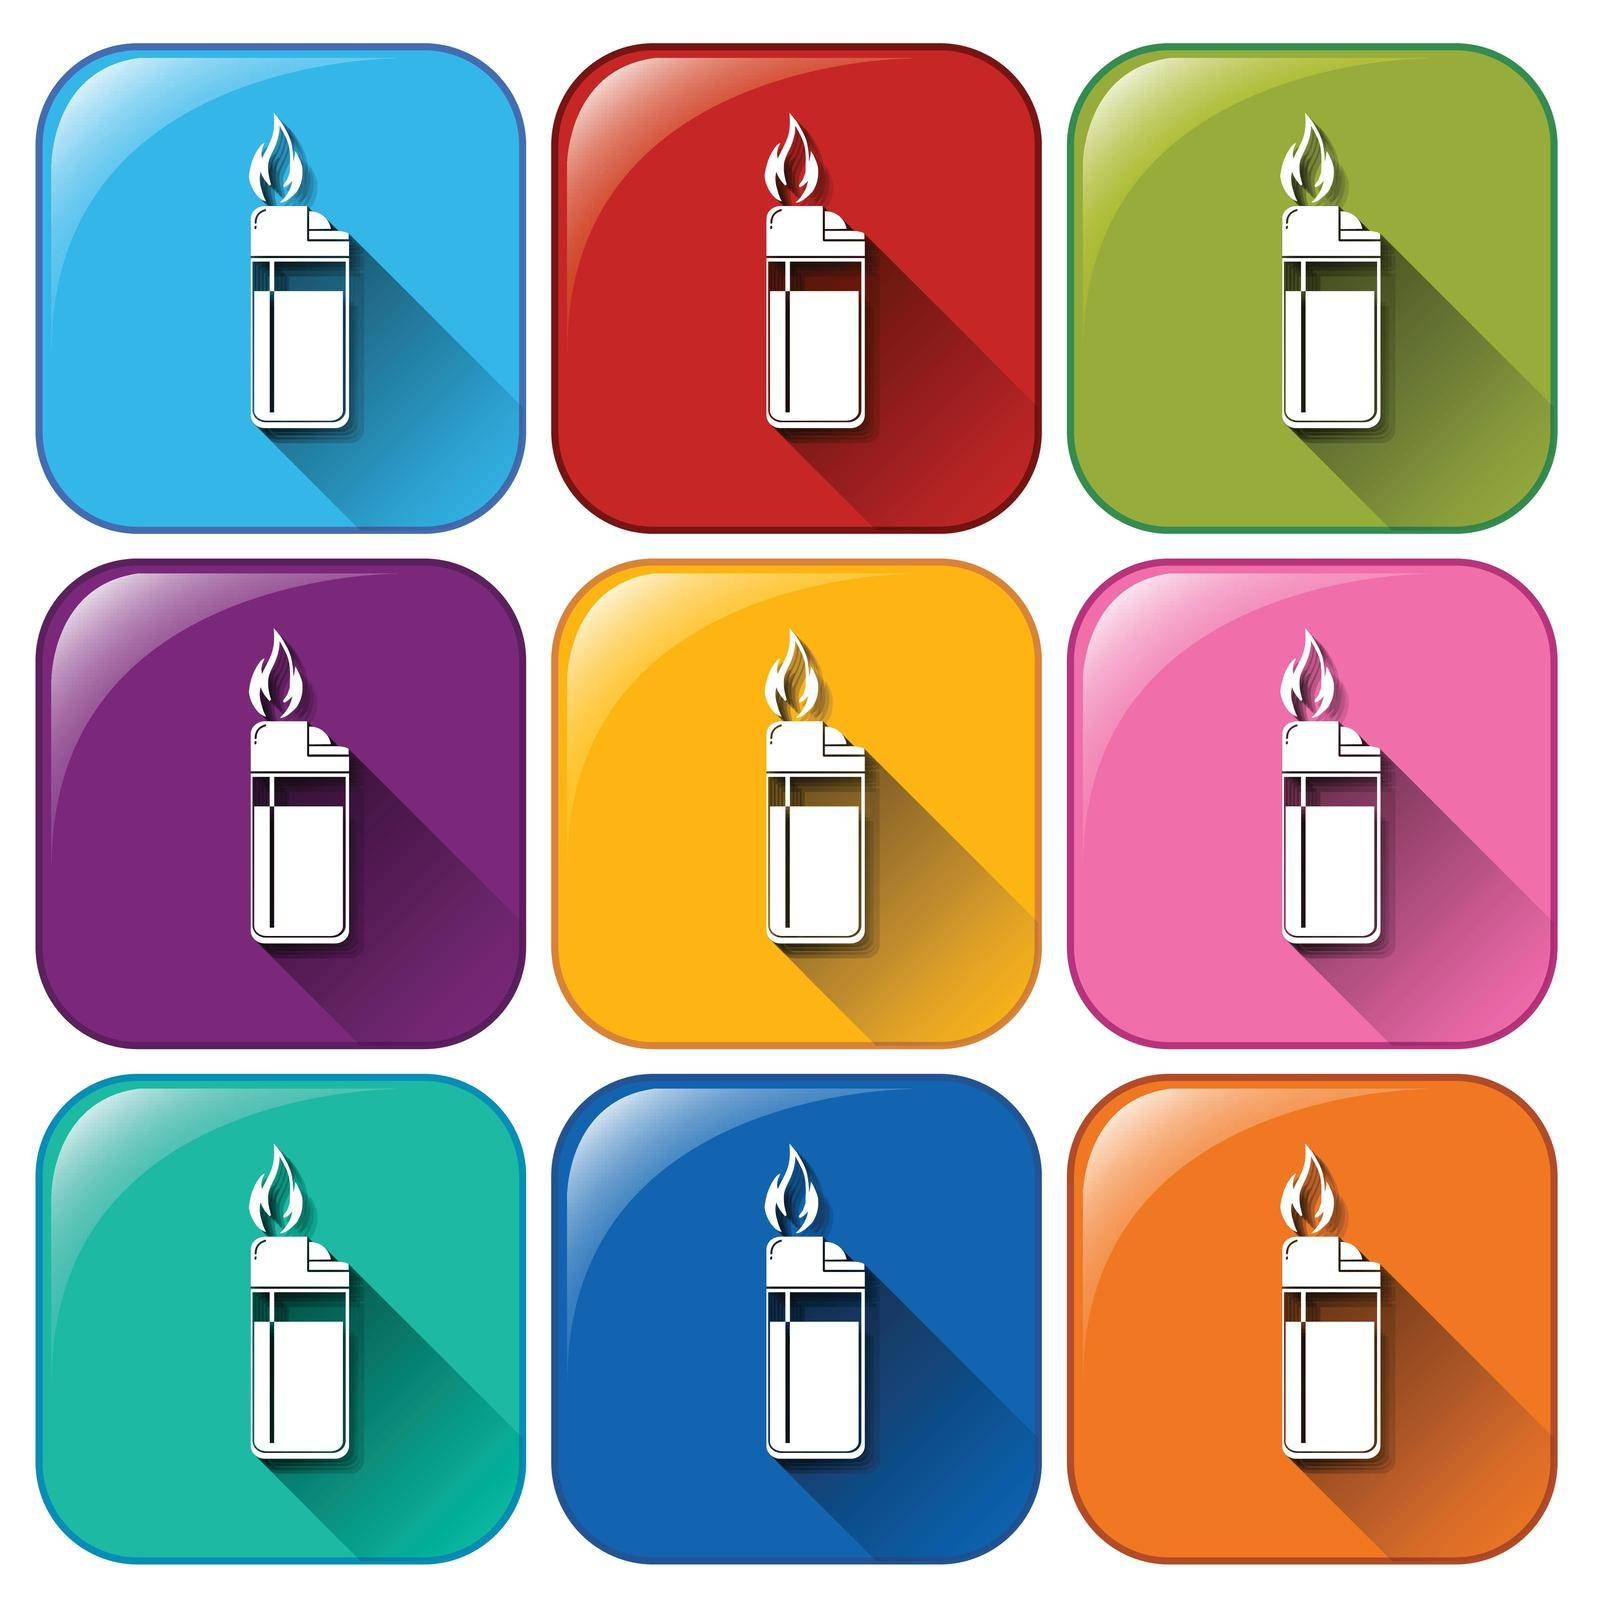 Illustration of the rounded icon with lighters on a white background